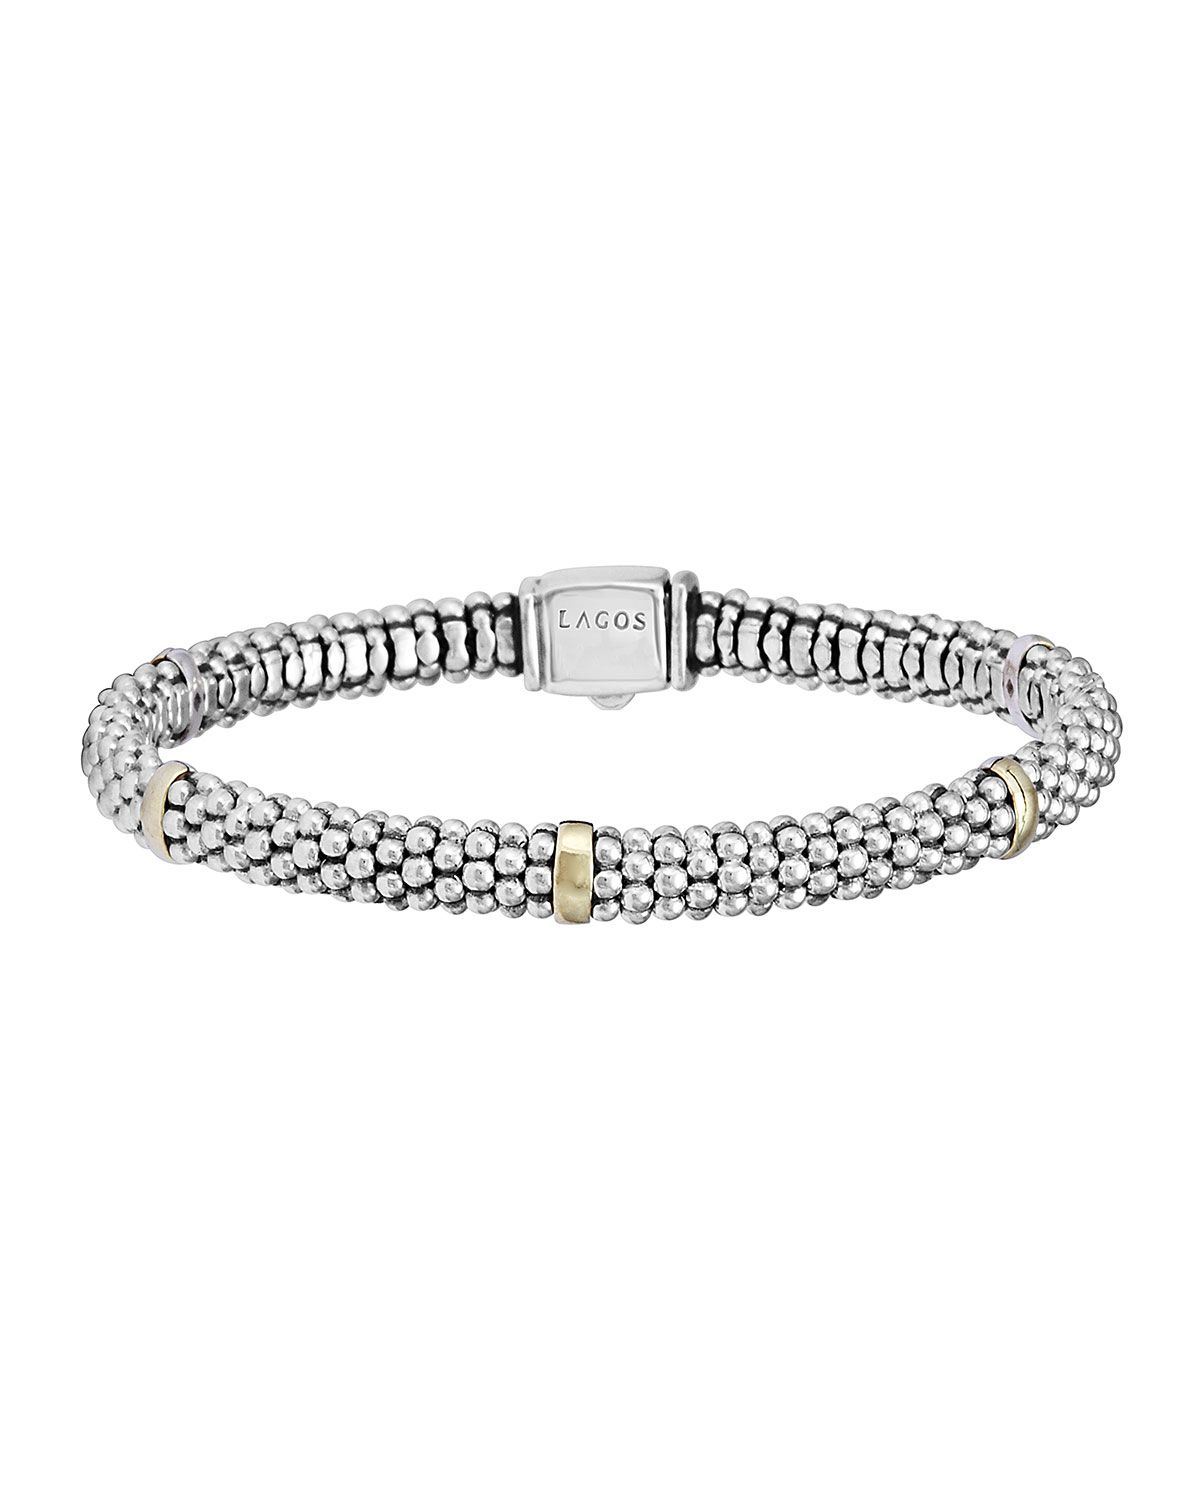 Signature silver caviar bracelet with k gold mm k gold